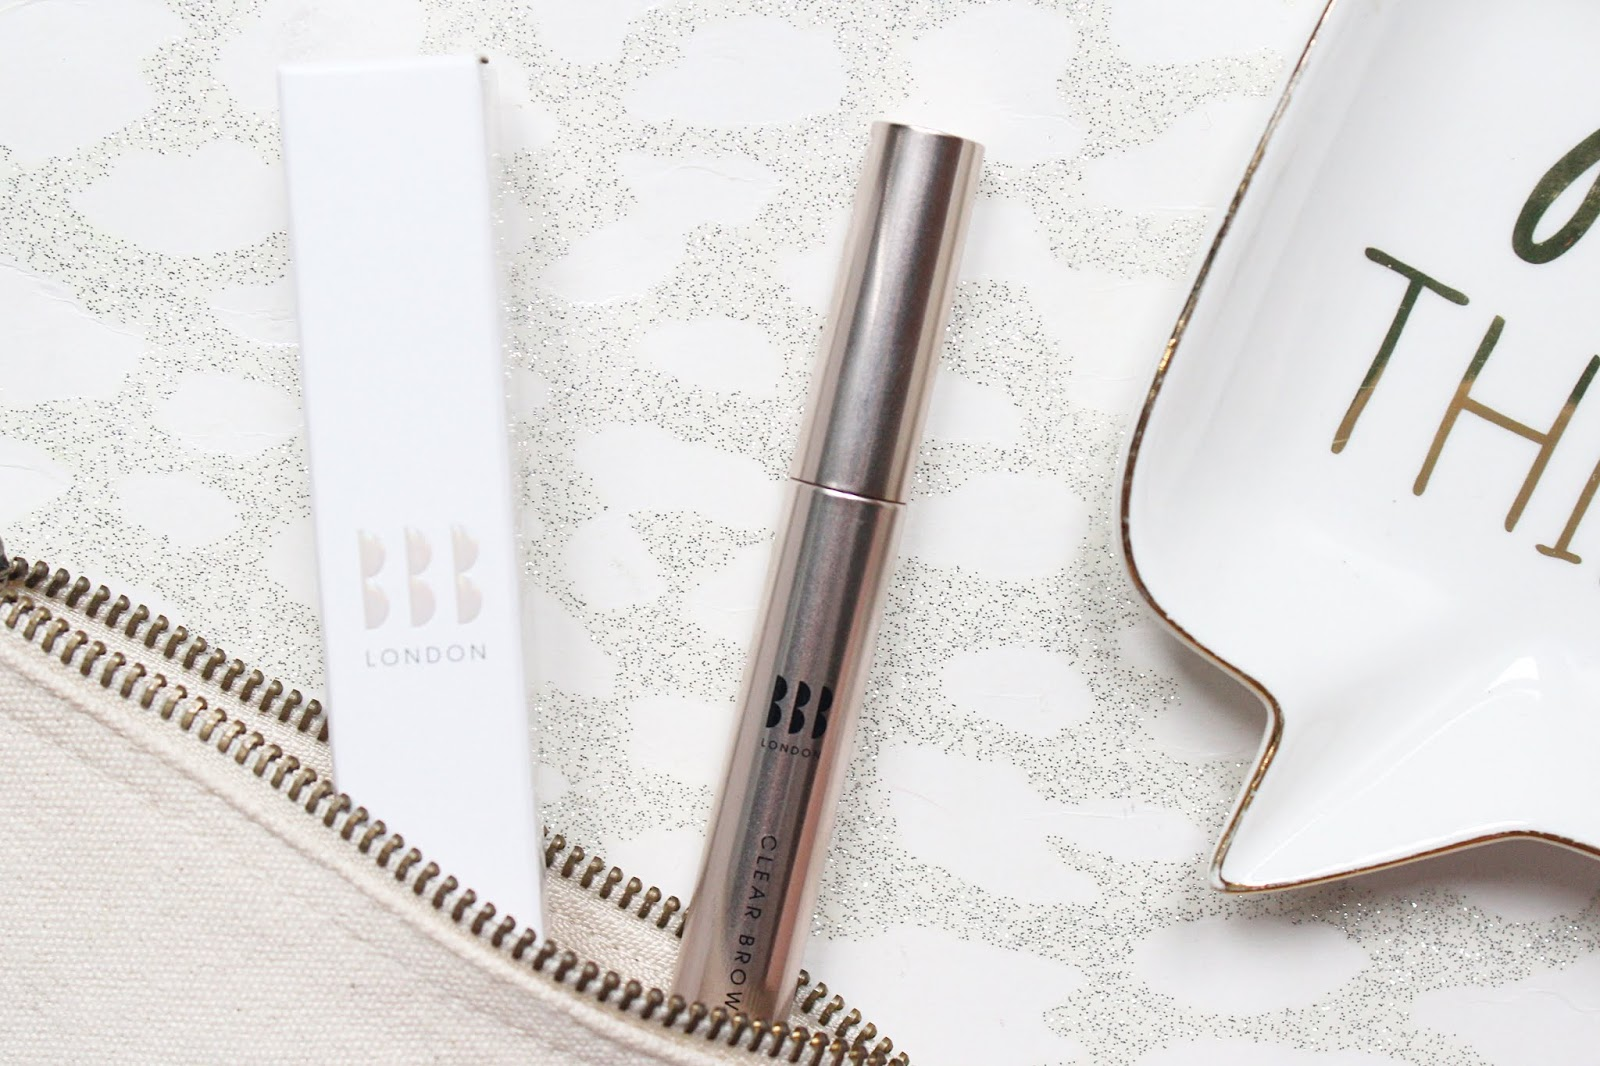 BBB London Clear Brow Gloss Review